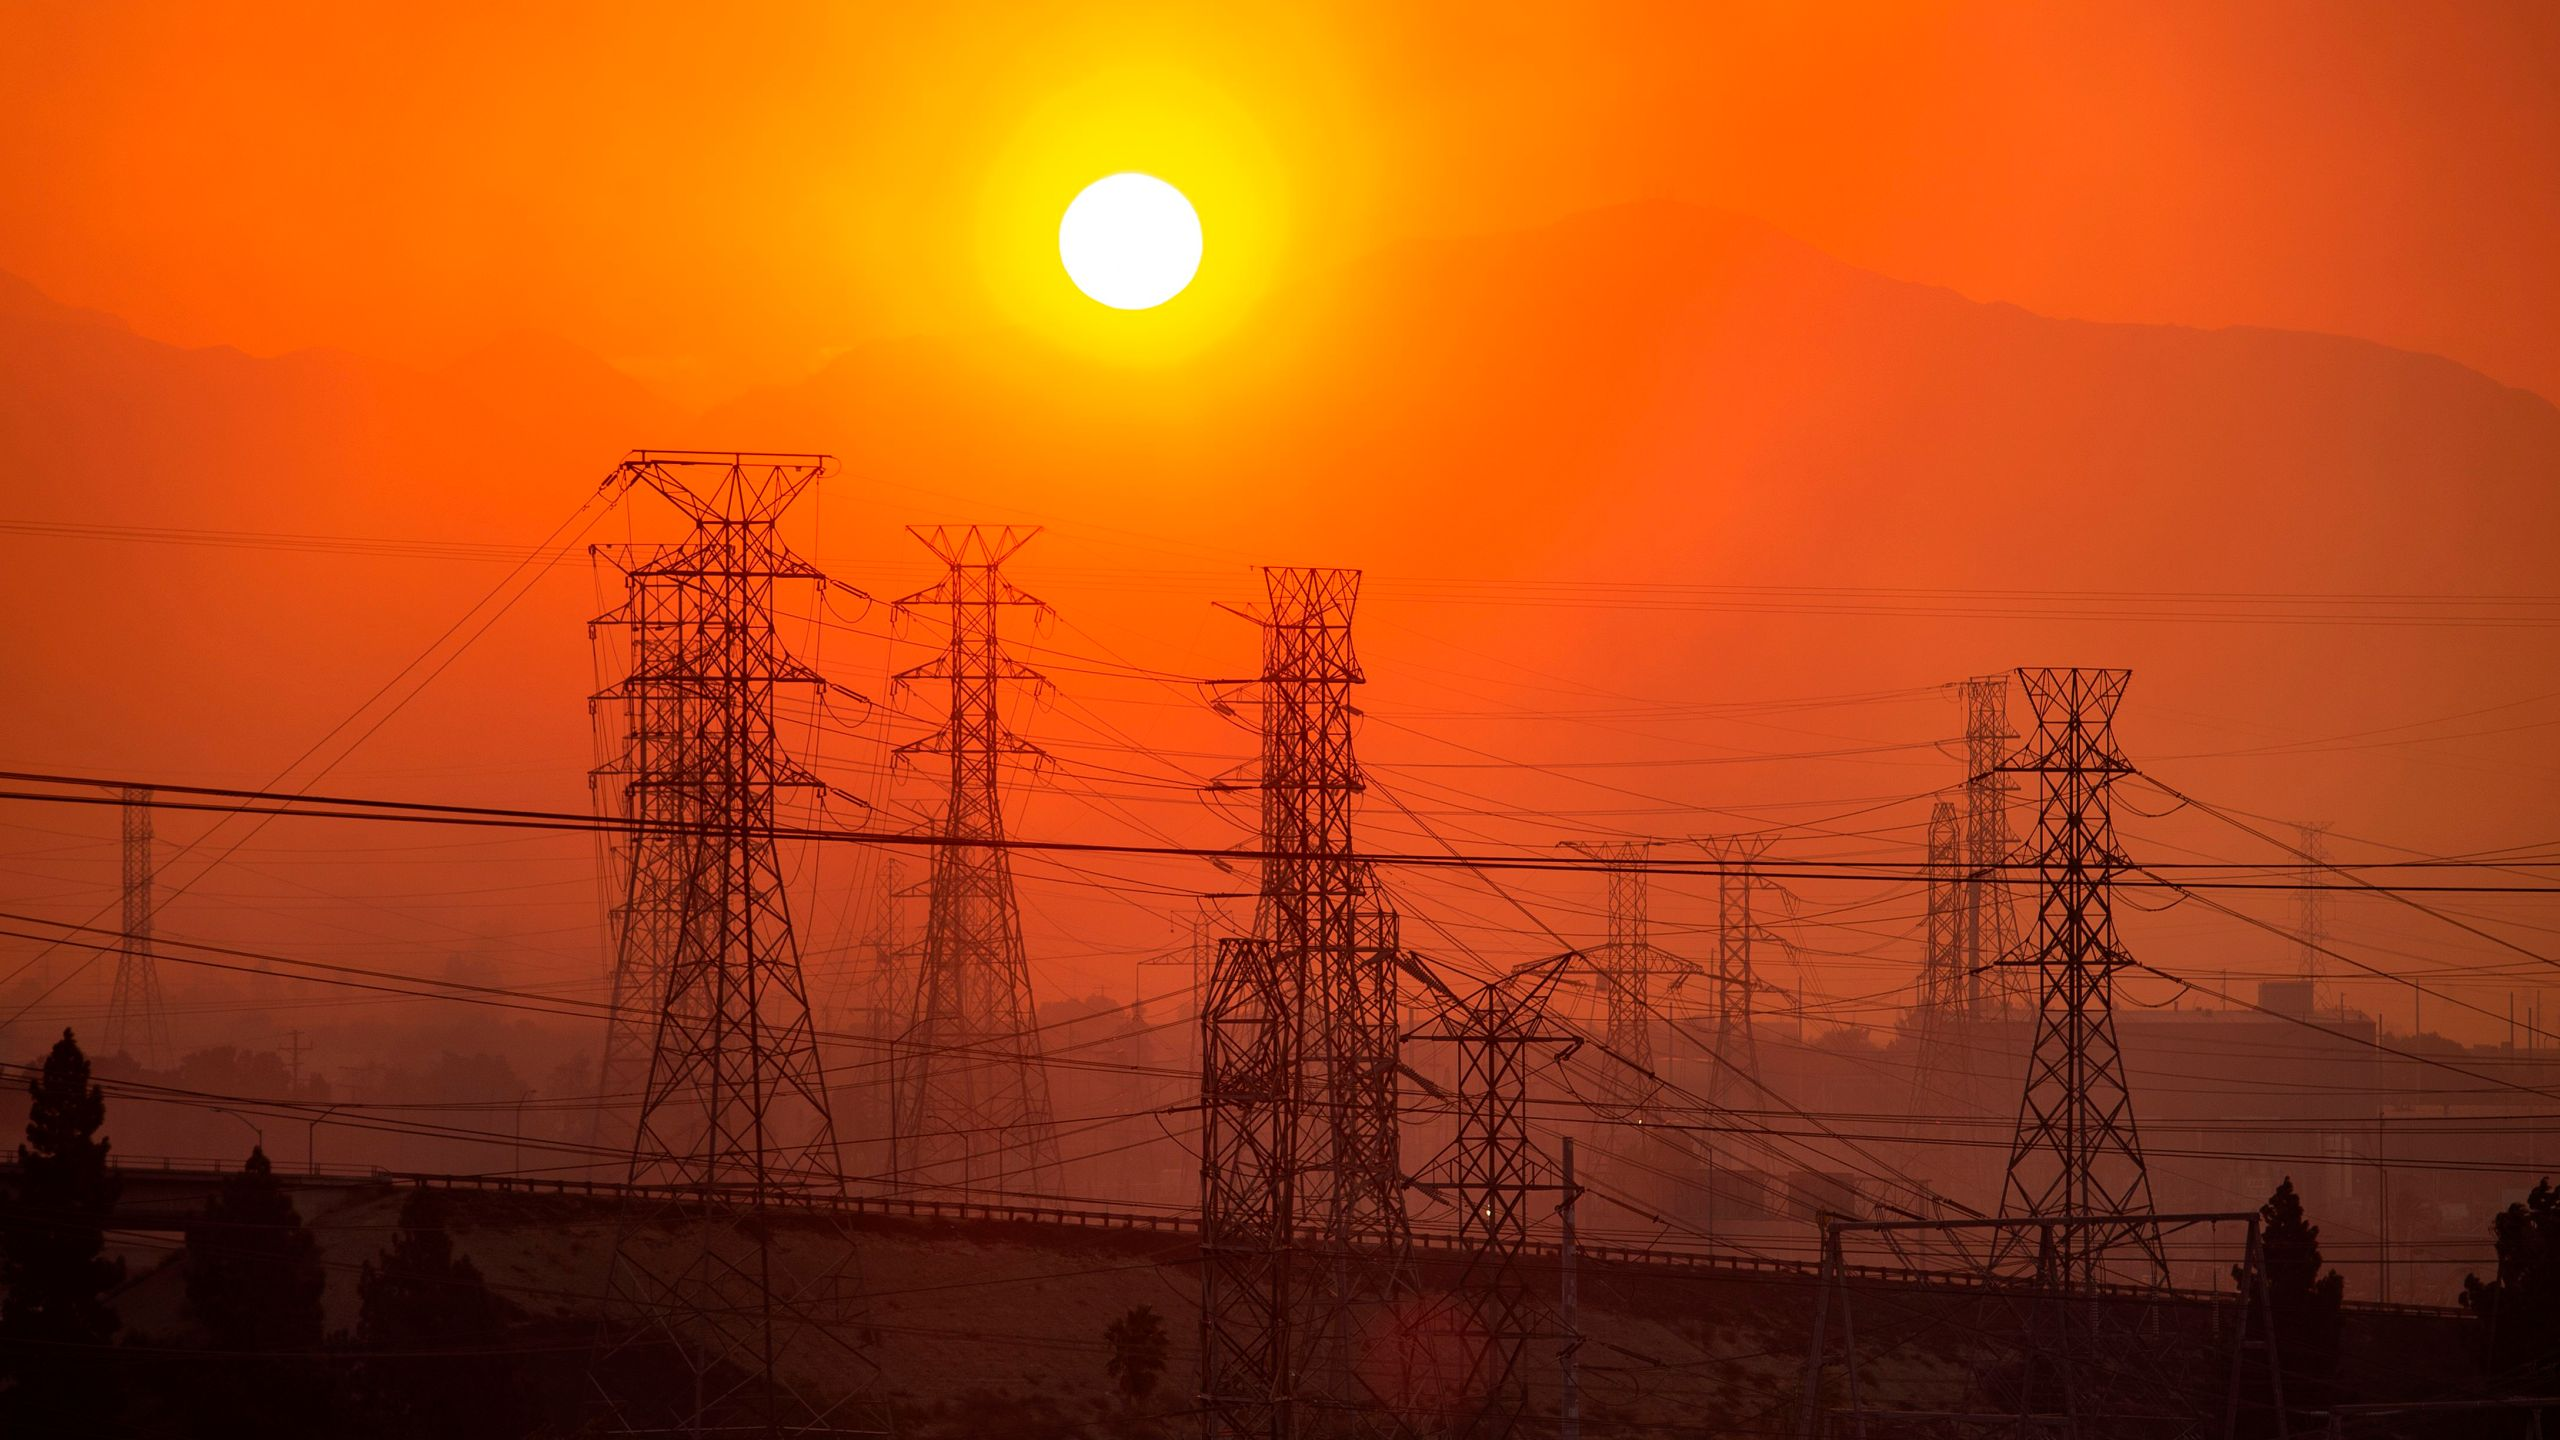 The sun rises over power lines along a smokey horizon during the Saddleridge Fire in Newhall on Oct. 11, 2019. (Credit: Josh Edelson/AFP via Getty Images)